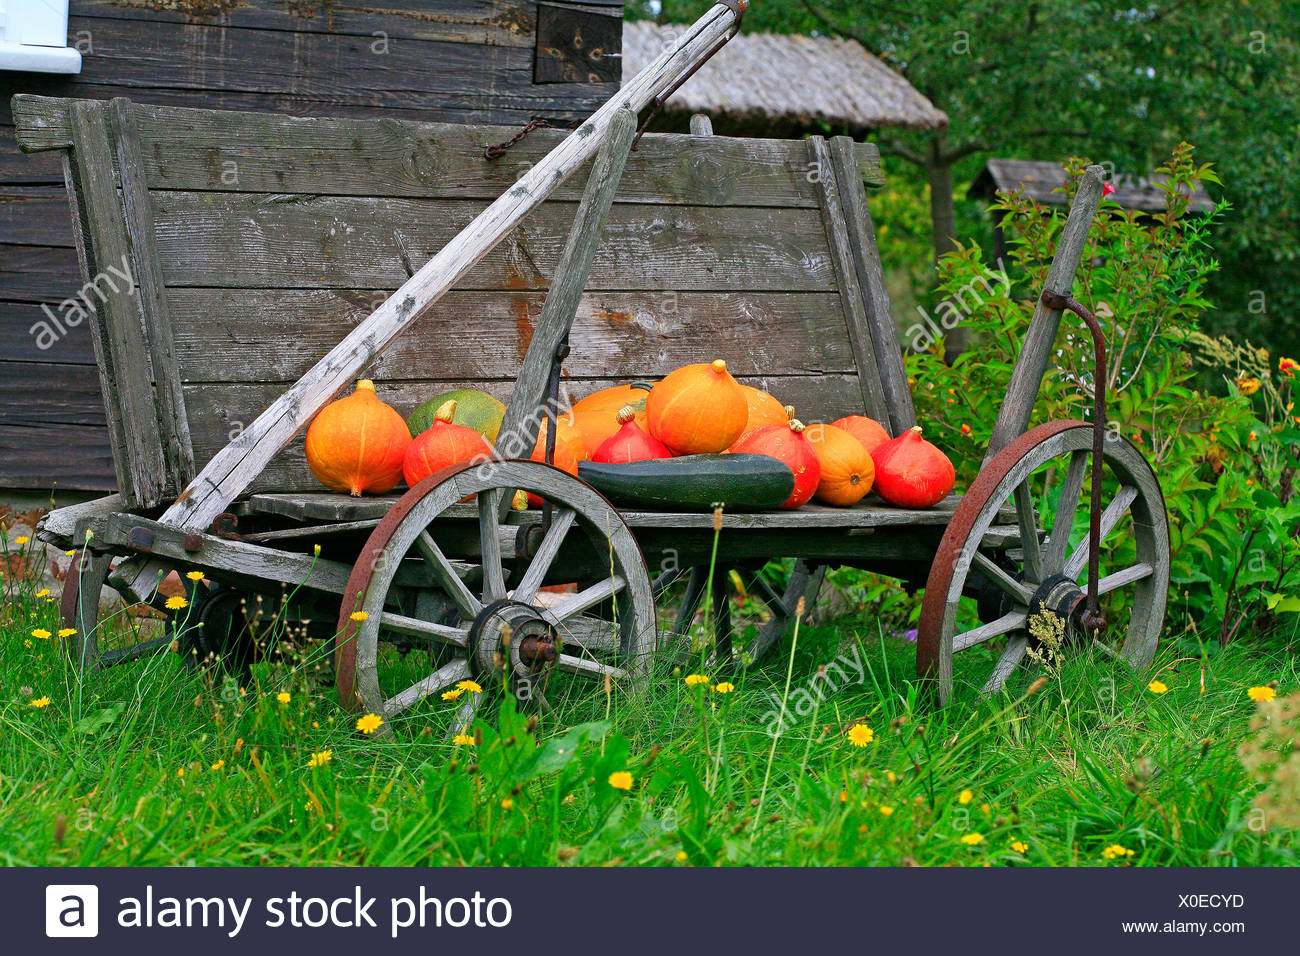 Old cart, pumpkins as decoration - Stock Image